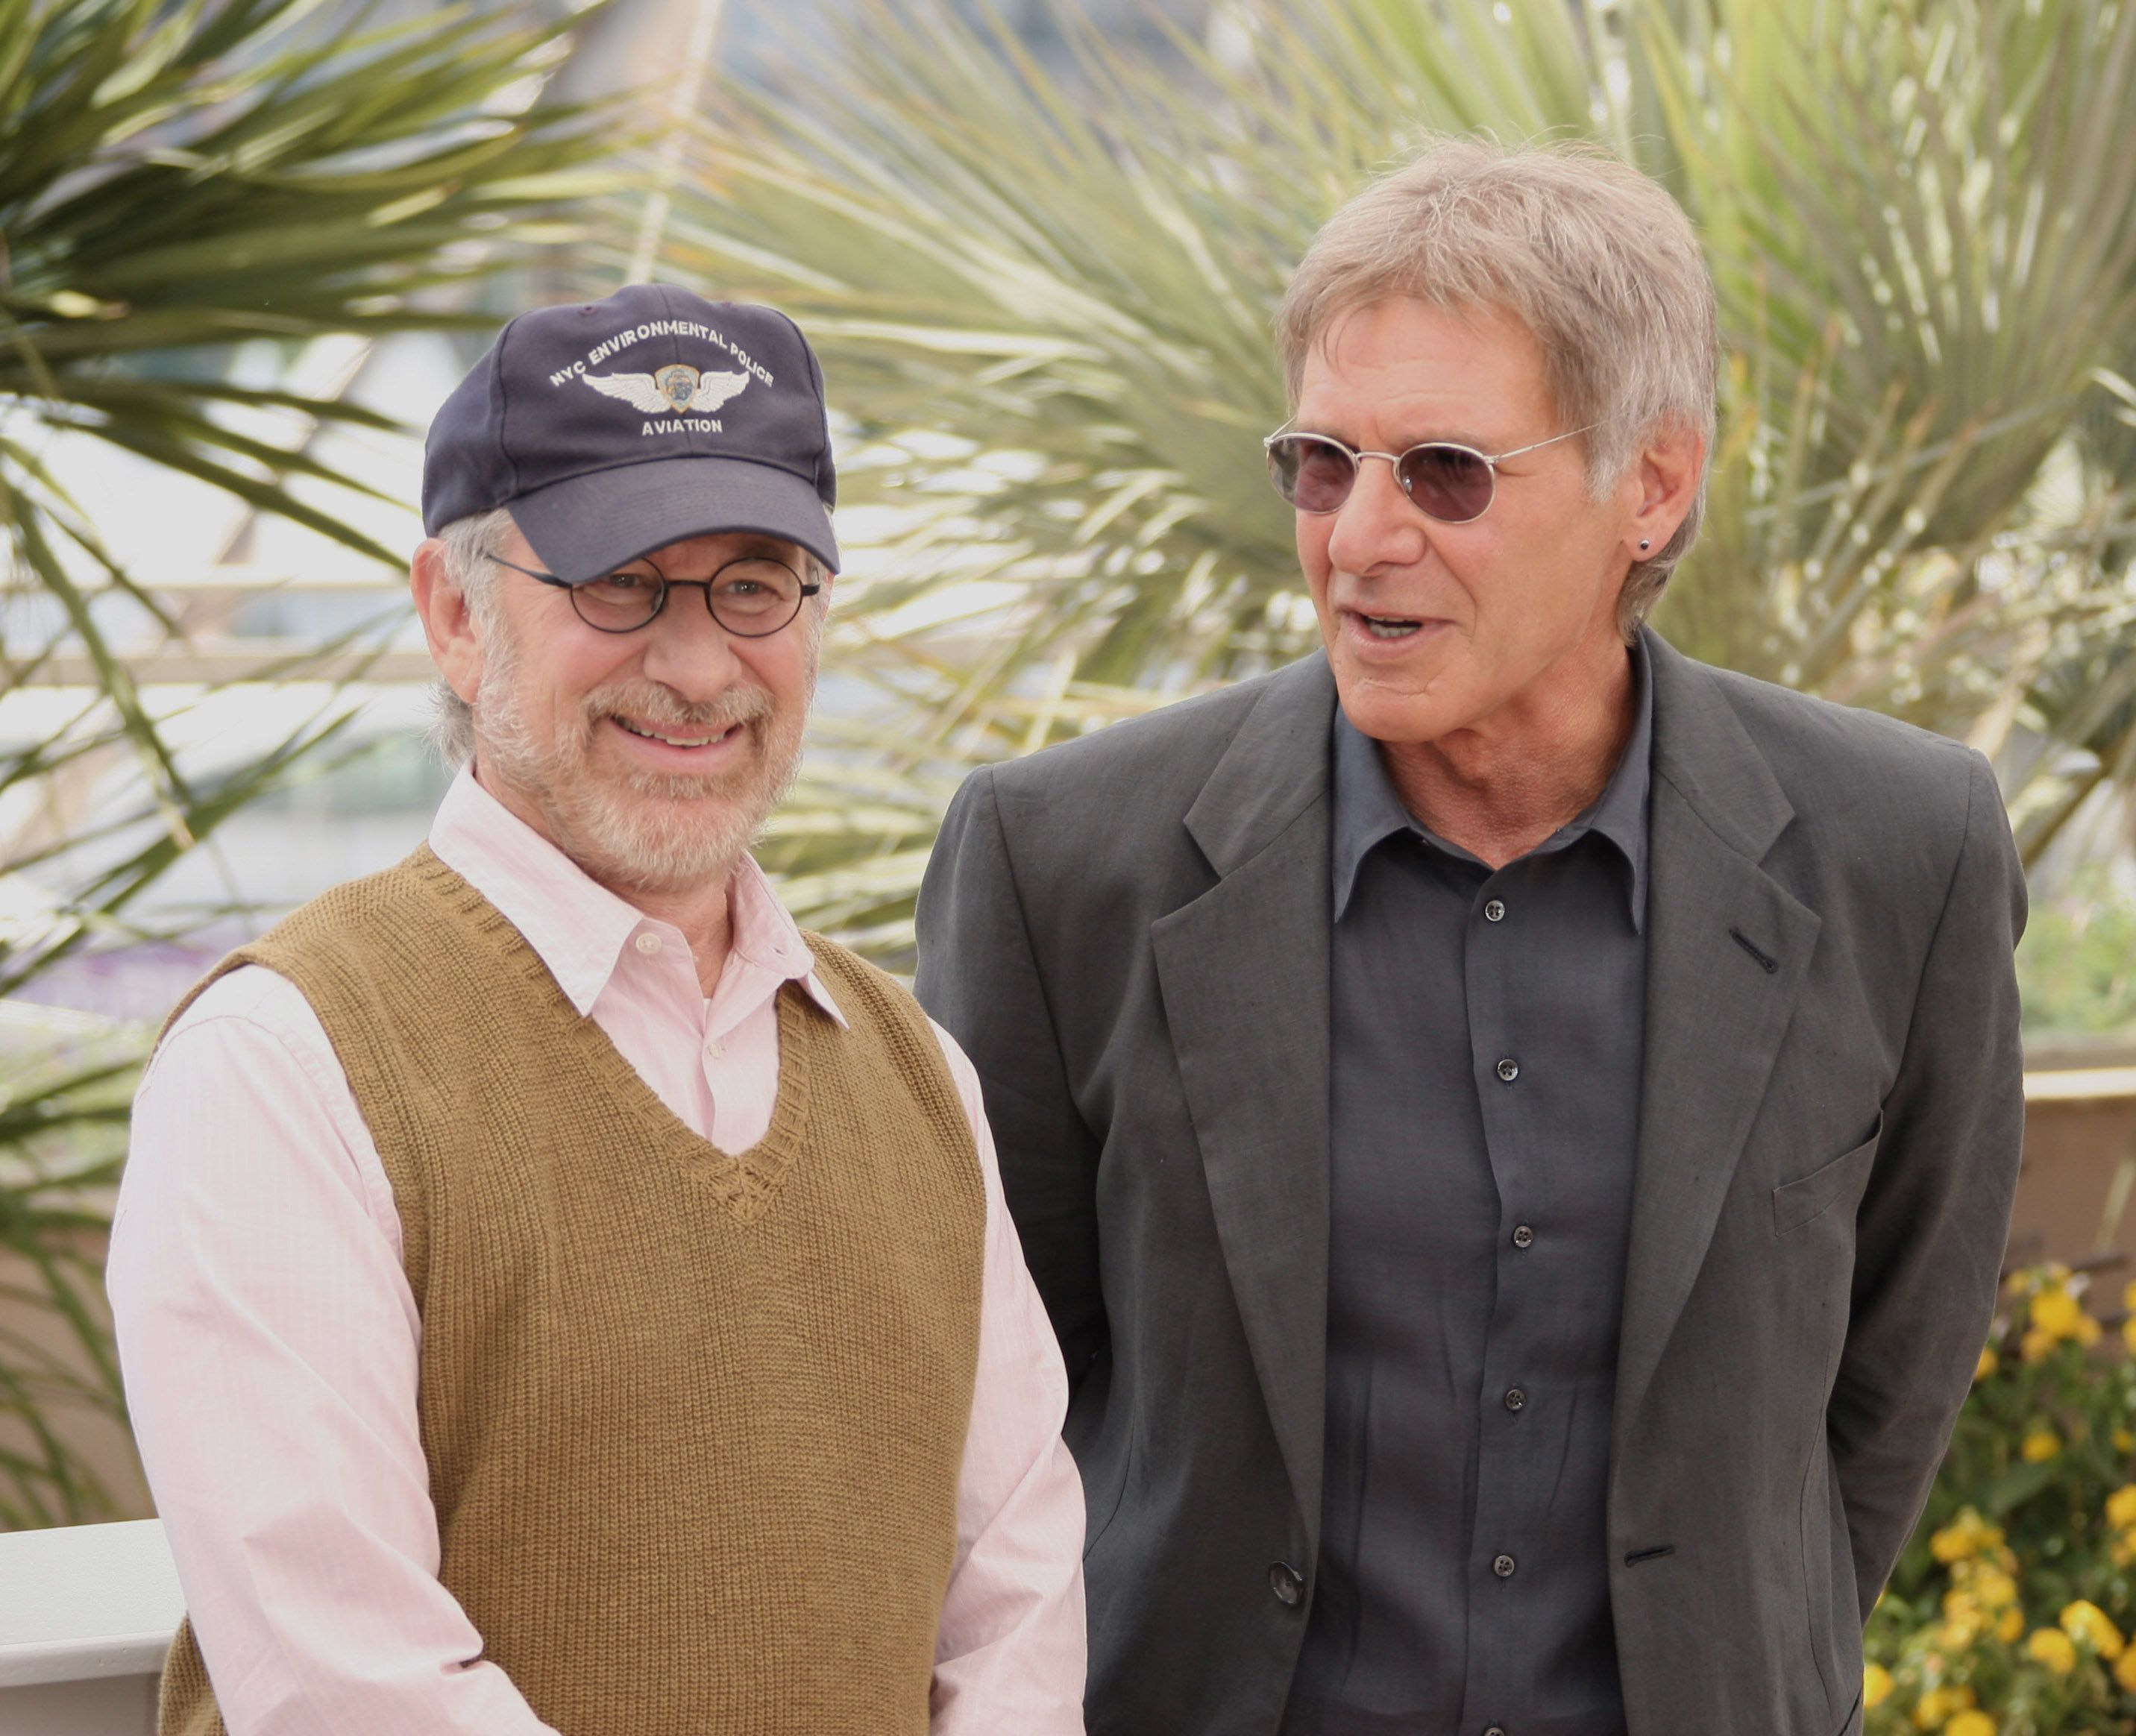 (L) Director Steven Spielberg and actor Harrison Ford attend the 'Indiana Jones and the Kingdom of the Crystal Skull' photocall at the Palais des Festivals during the 61st Cannes International Film Festival on May 18, 2008 in Cannes, France. (Photo by George Pimentel/WireImage)